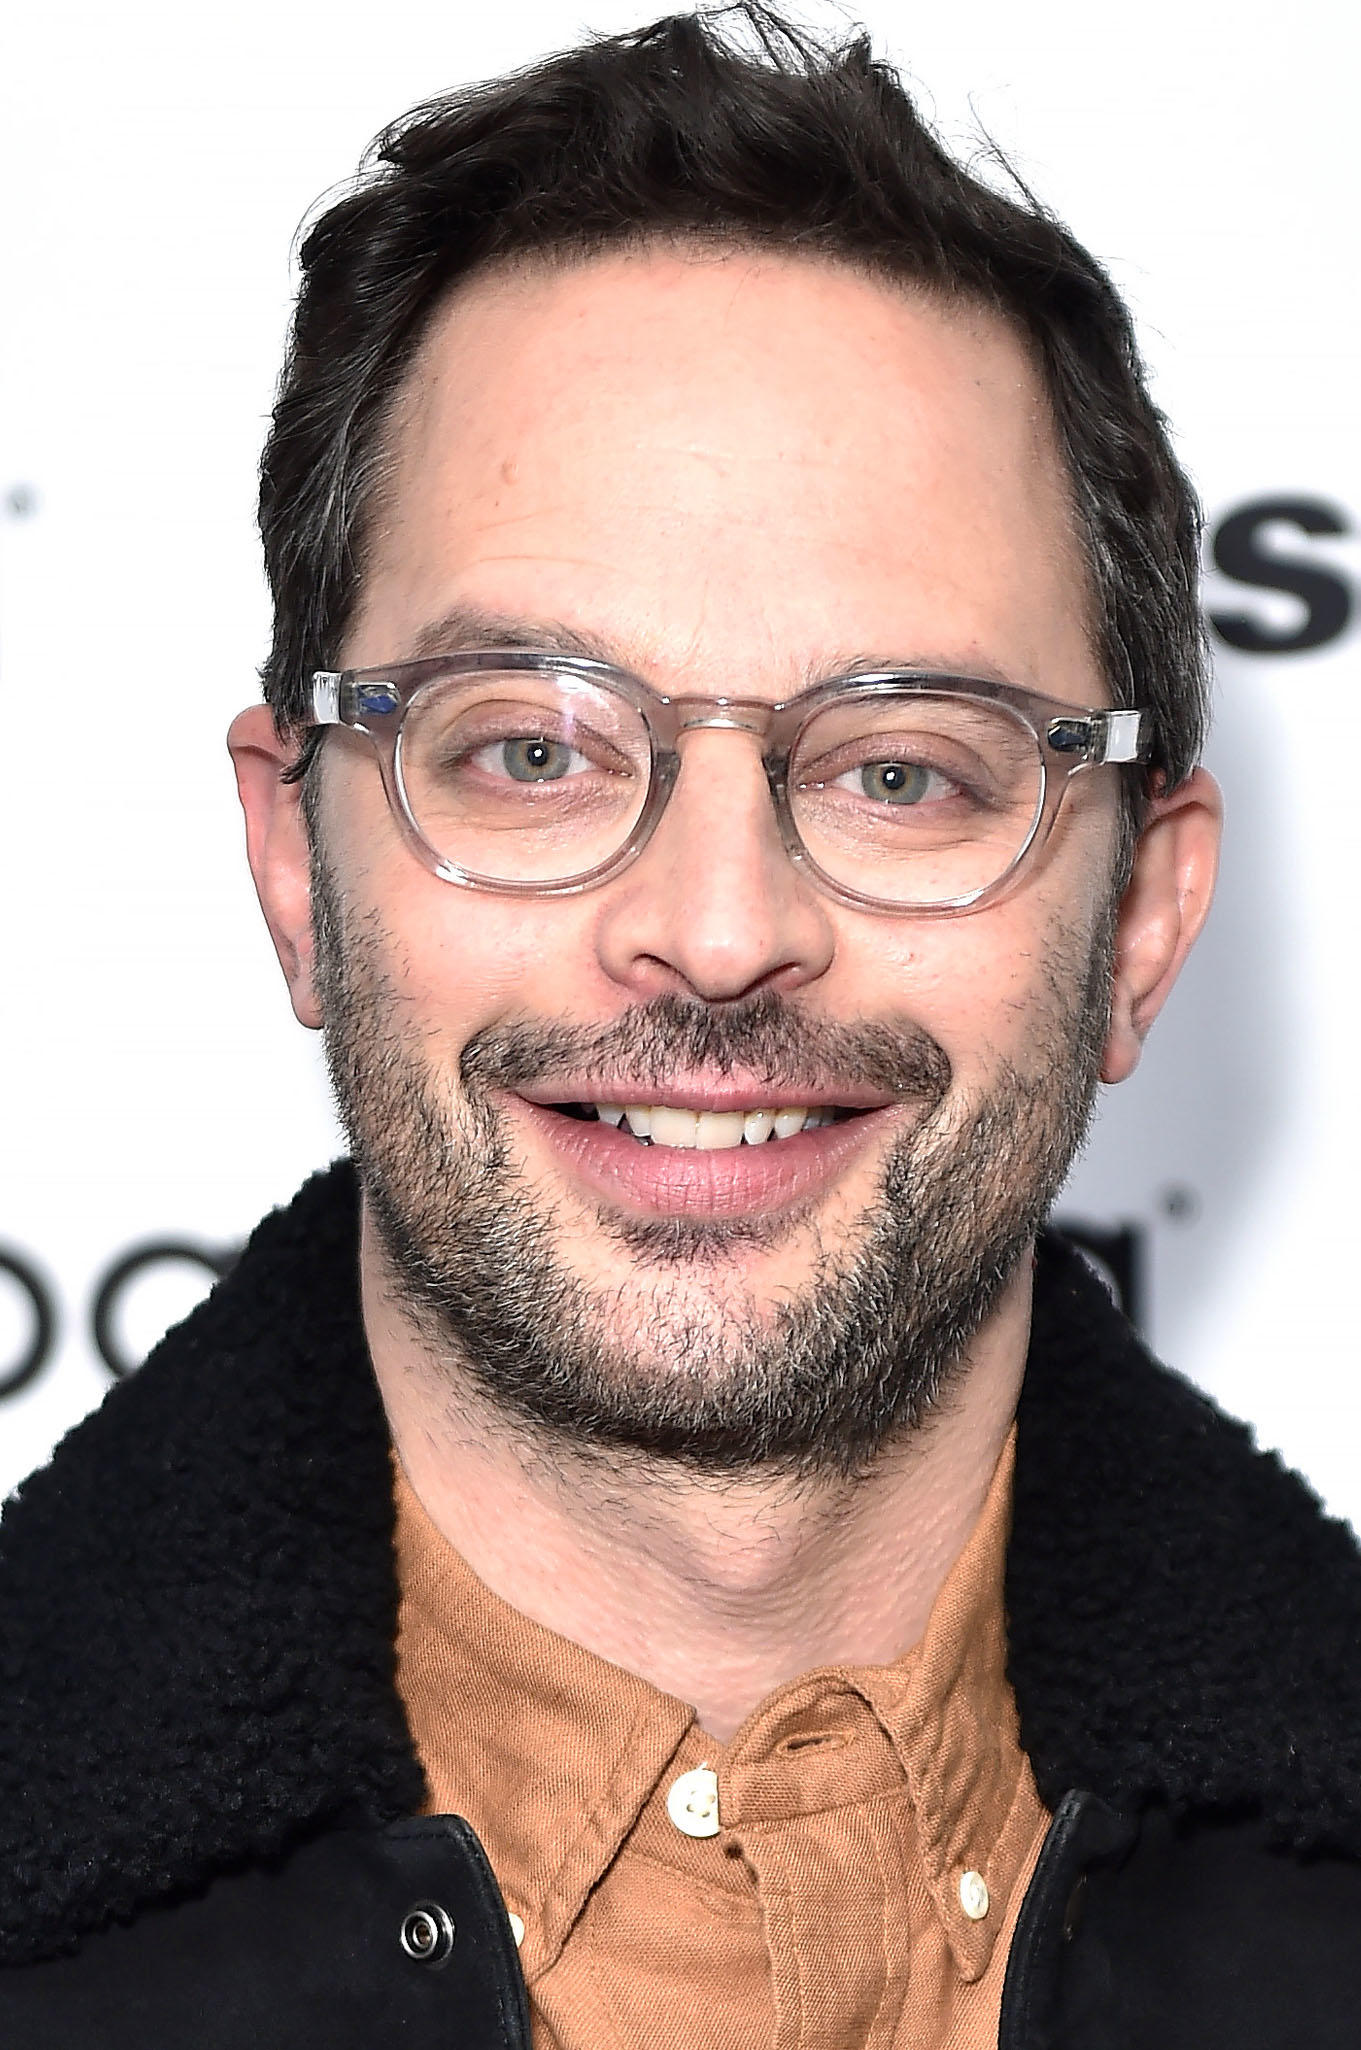 Nick Kroll at SiriusXM Studios in New York City.